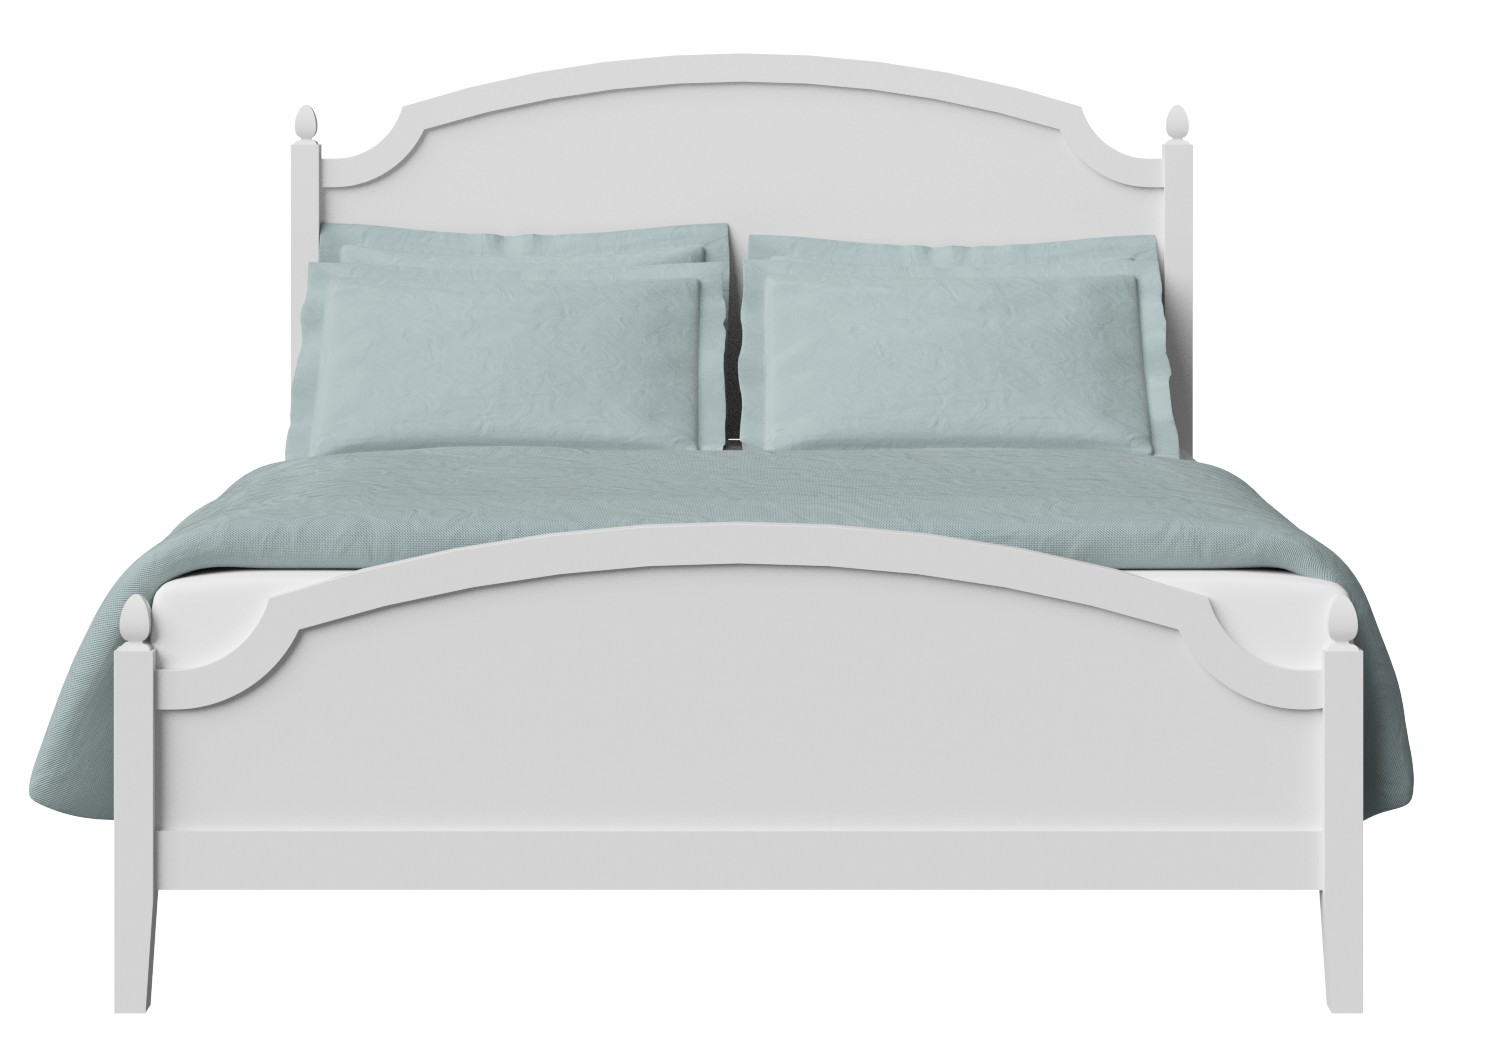 Kipling Low Footend Wood Bed in White